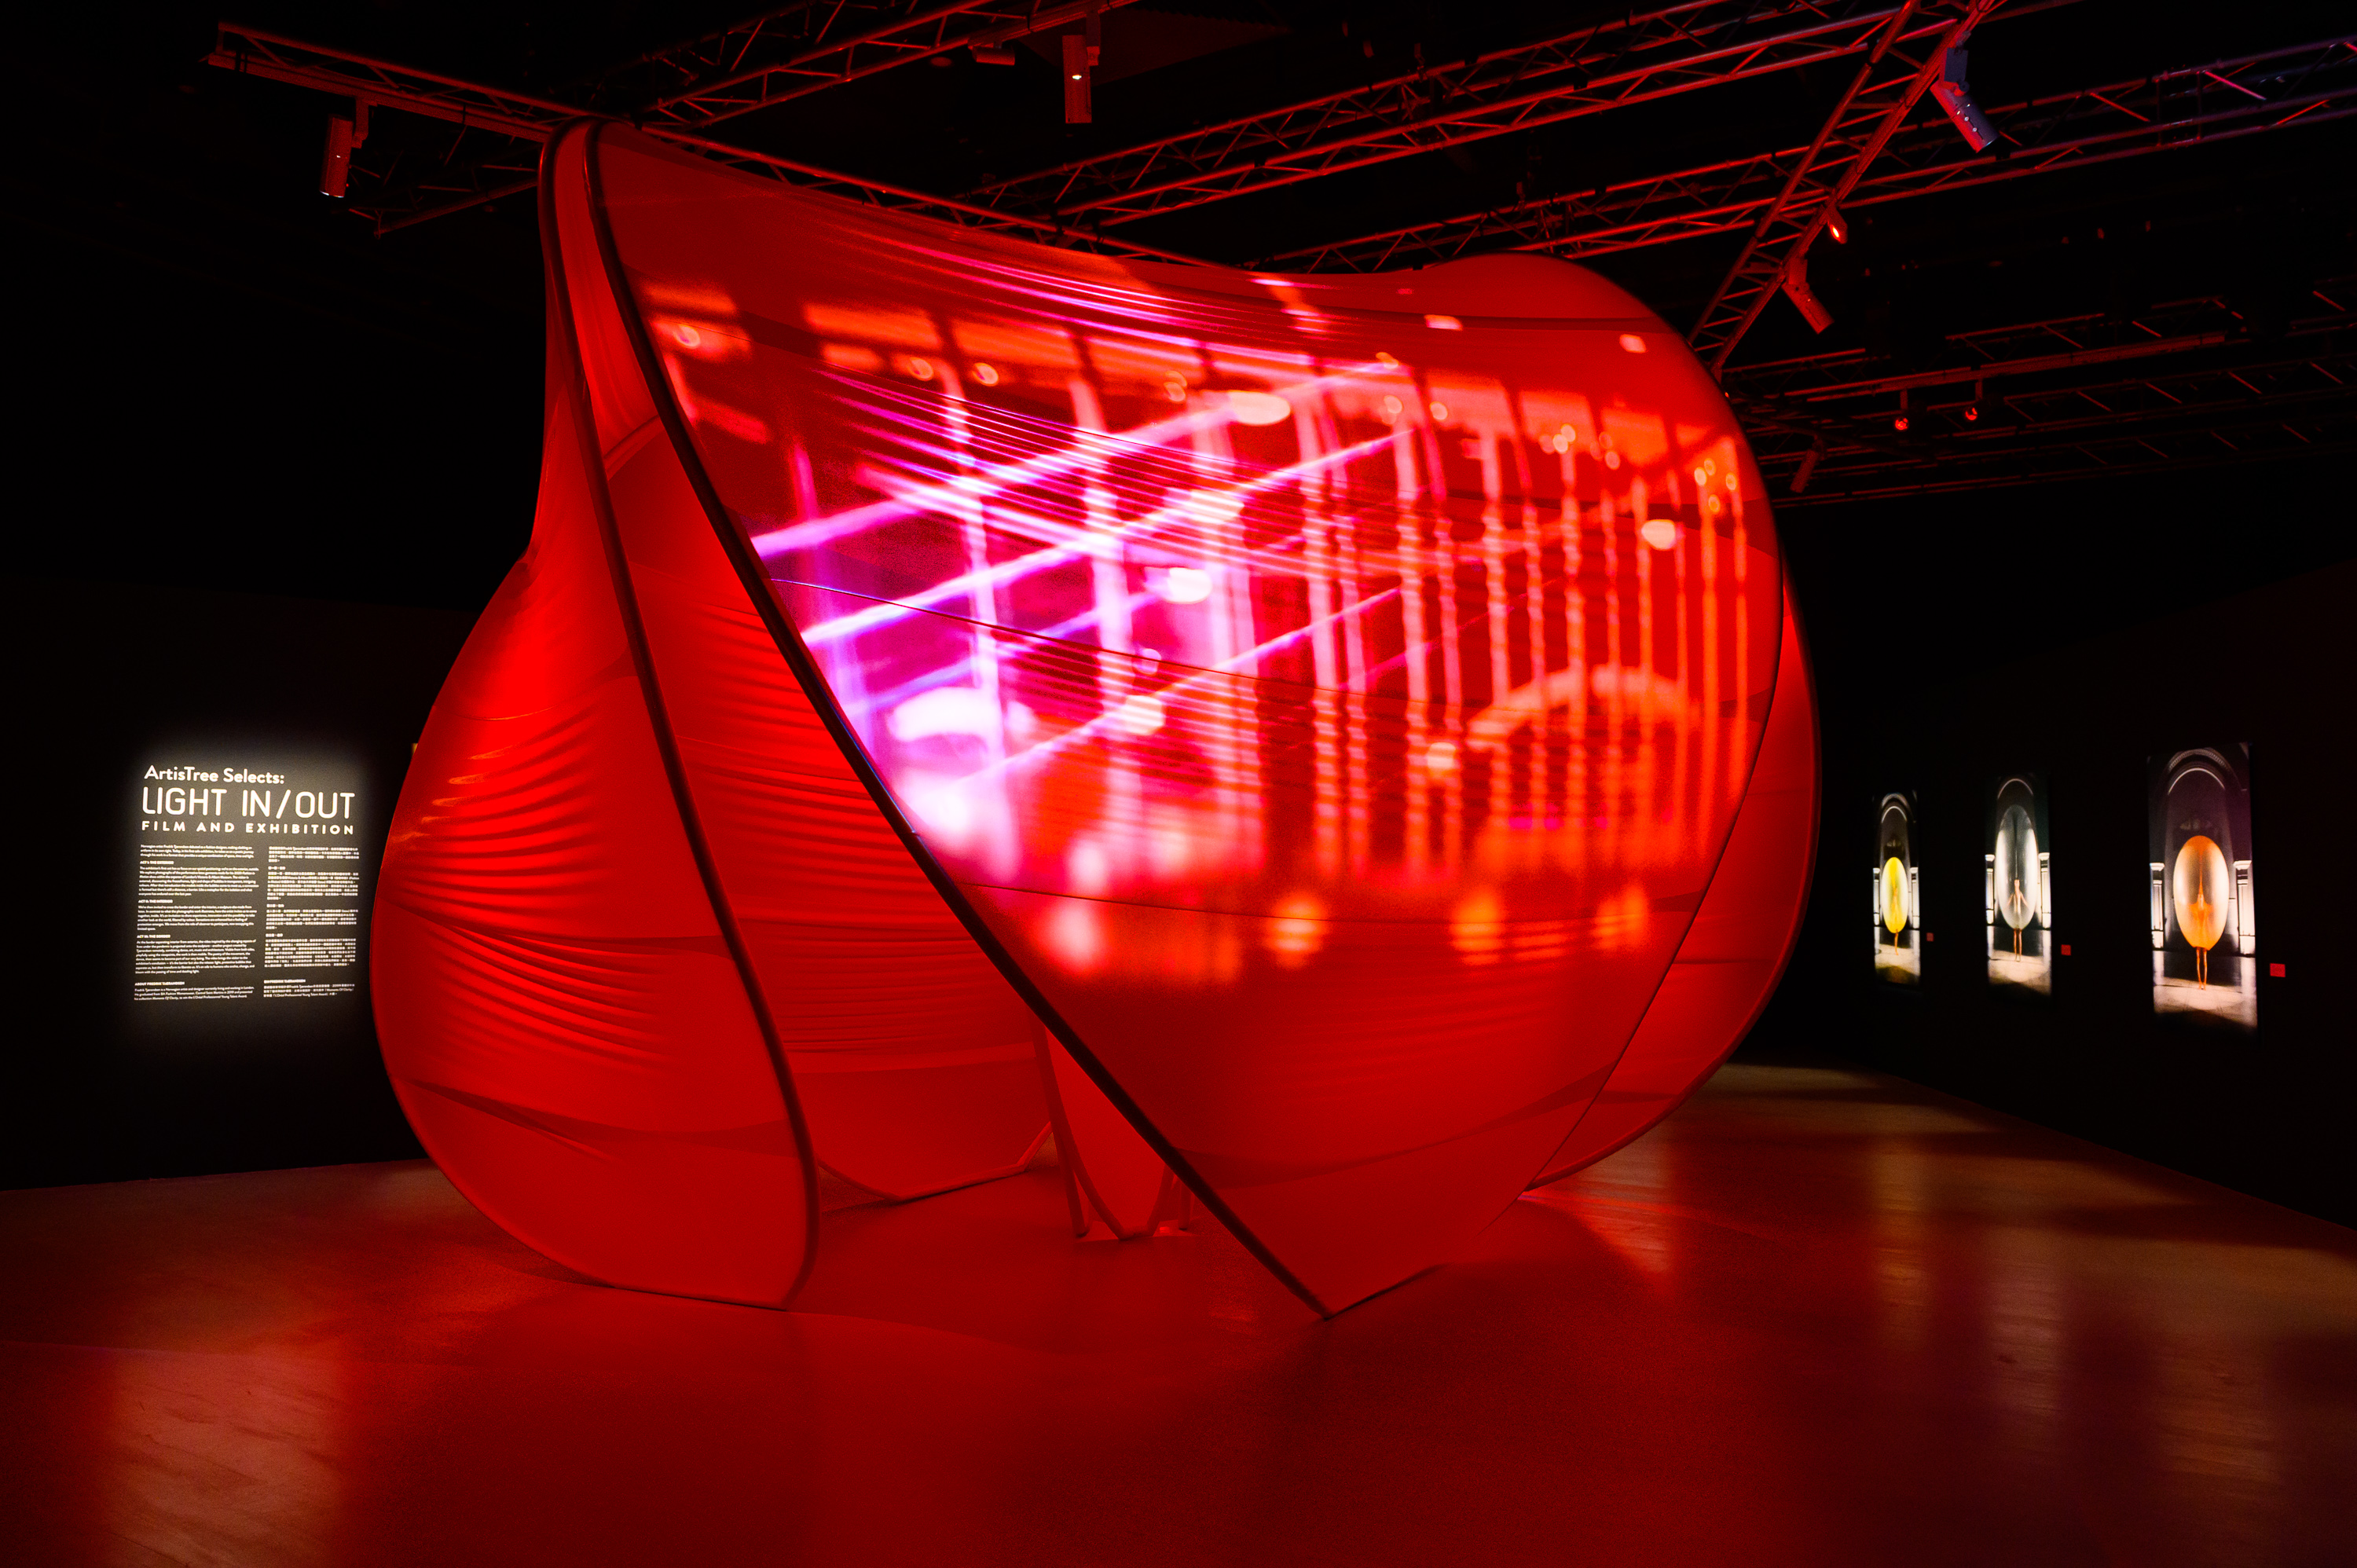 Light In Out film and exhibition by Fredrik Tjærandsen at ArtisTree Hong Kong